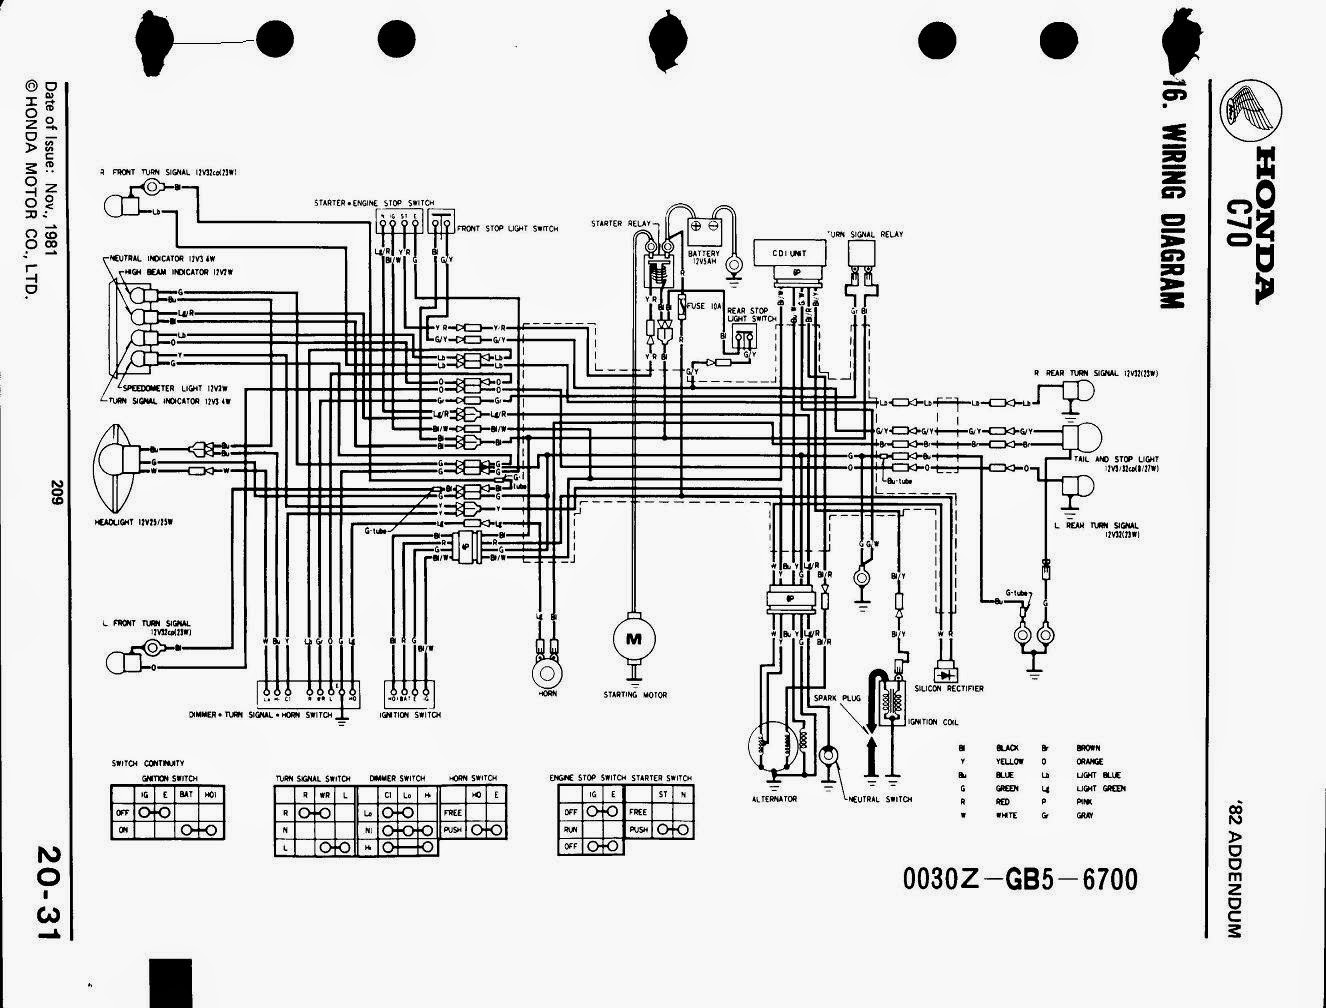 1972 honda cb350 wiring diagram land rover discovery 3 headlight cl100 imageresizertool com